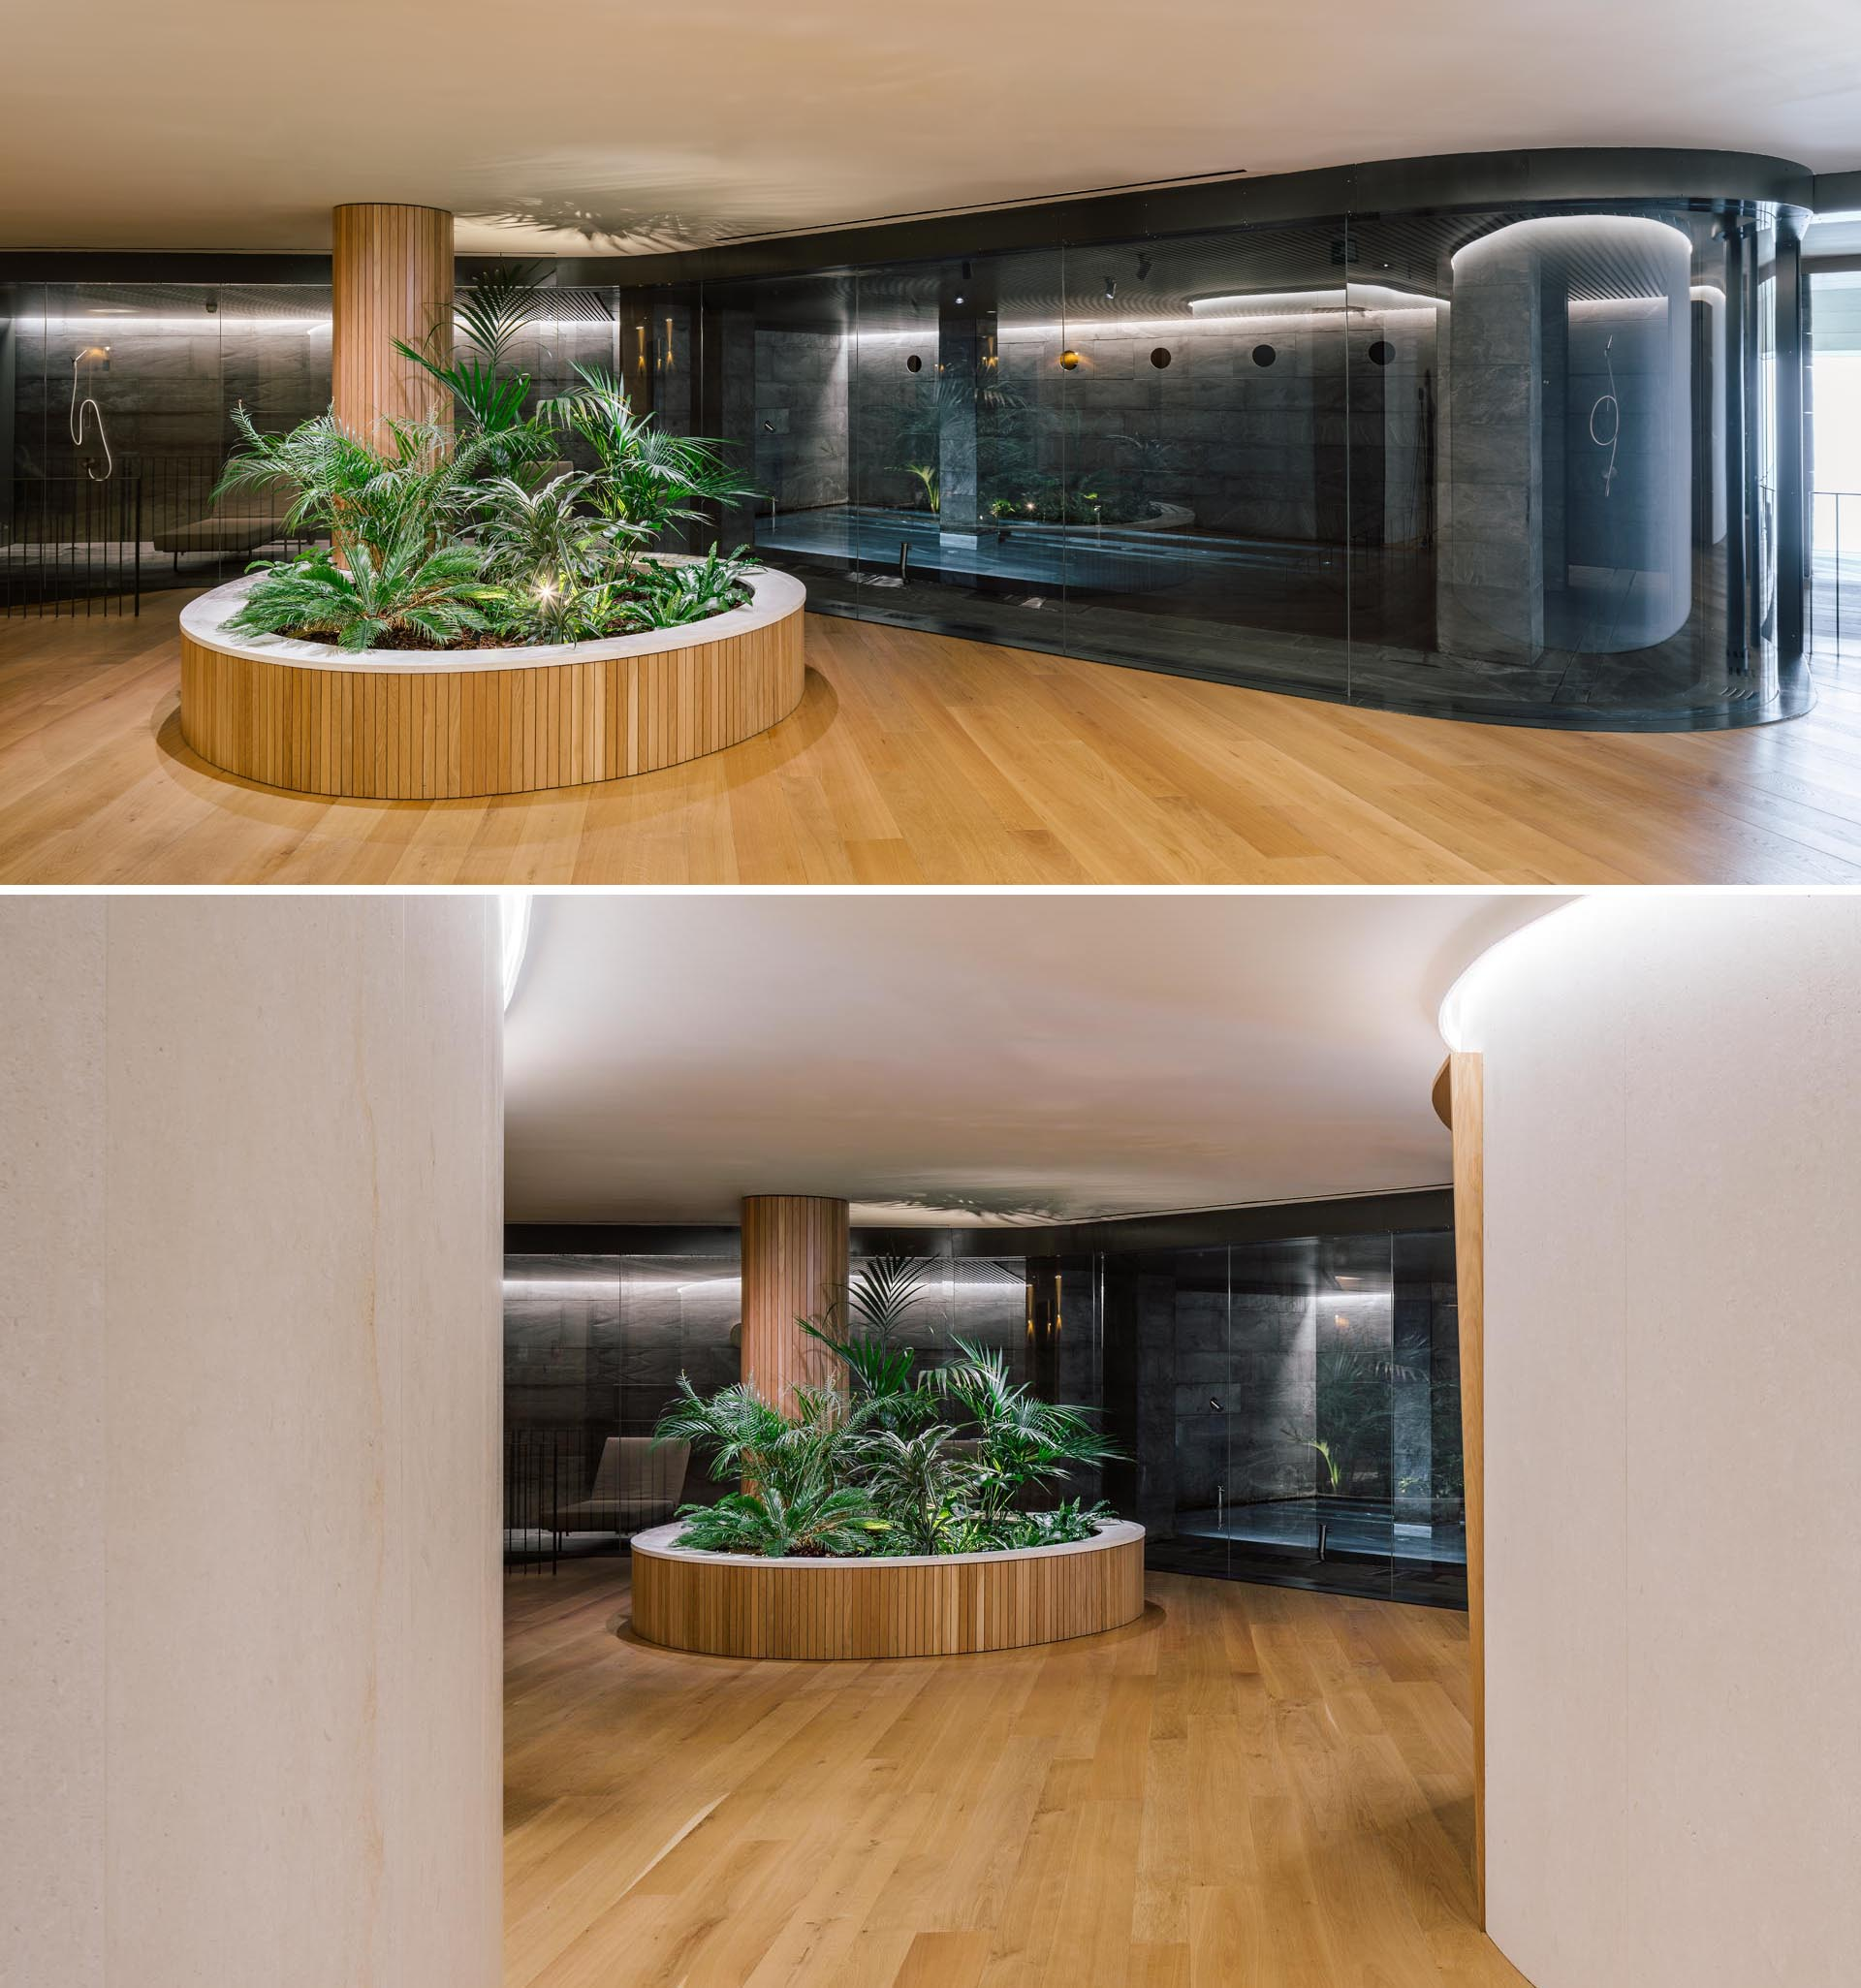 A modern spa with built-in planters that have been designed to help guide the flow of people around the spa.